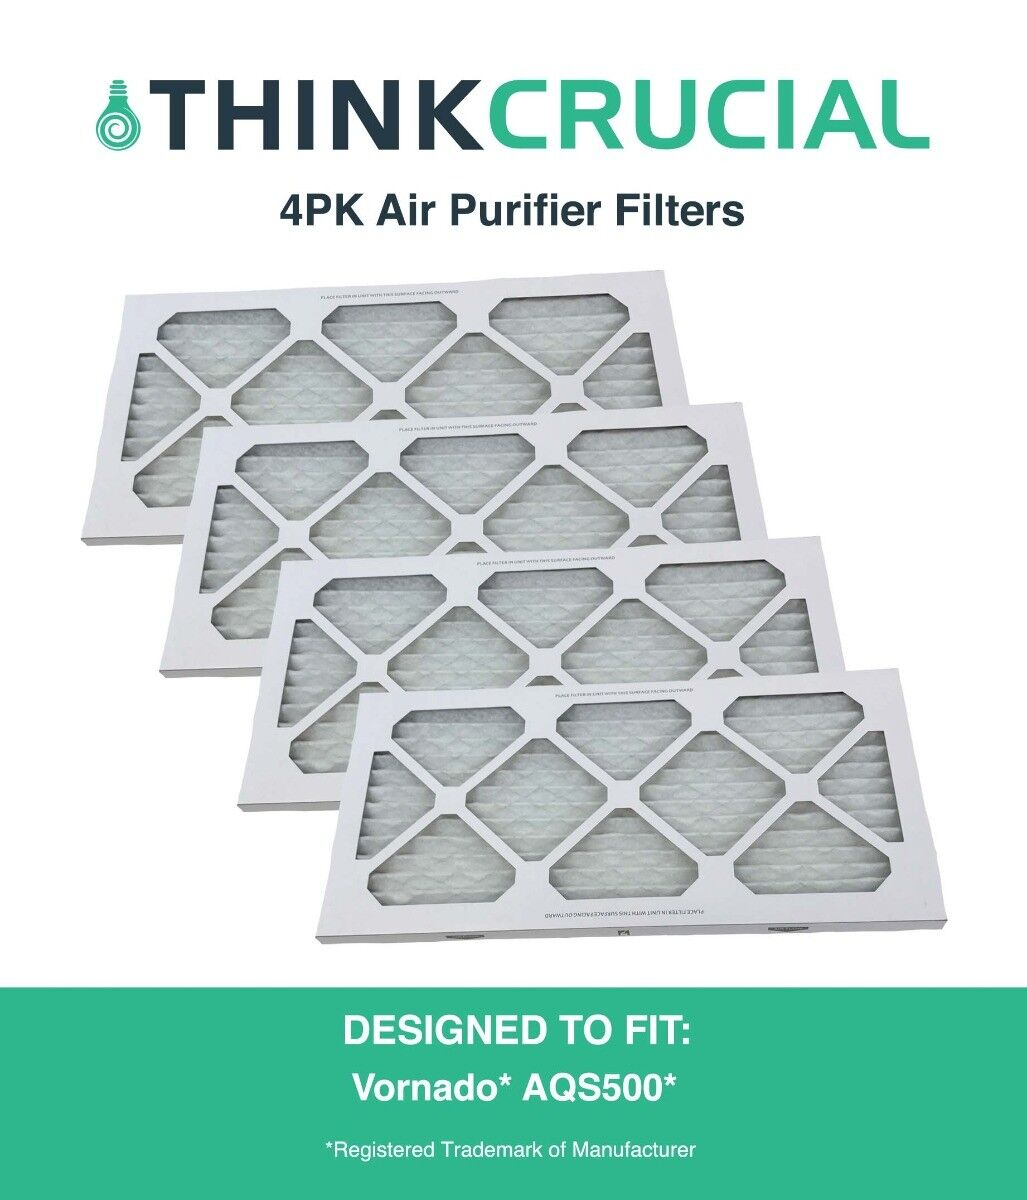 4 replacements crucial air humidifier wick filters